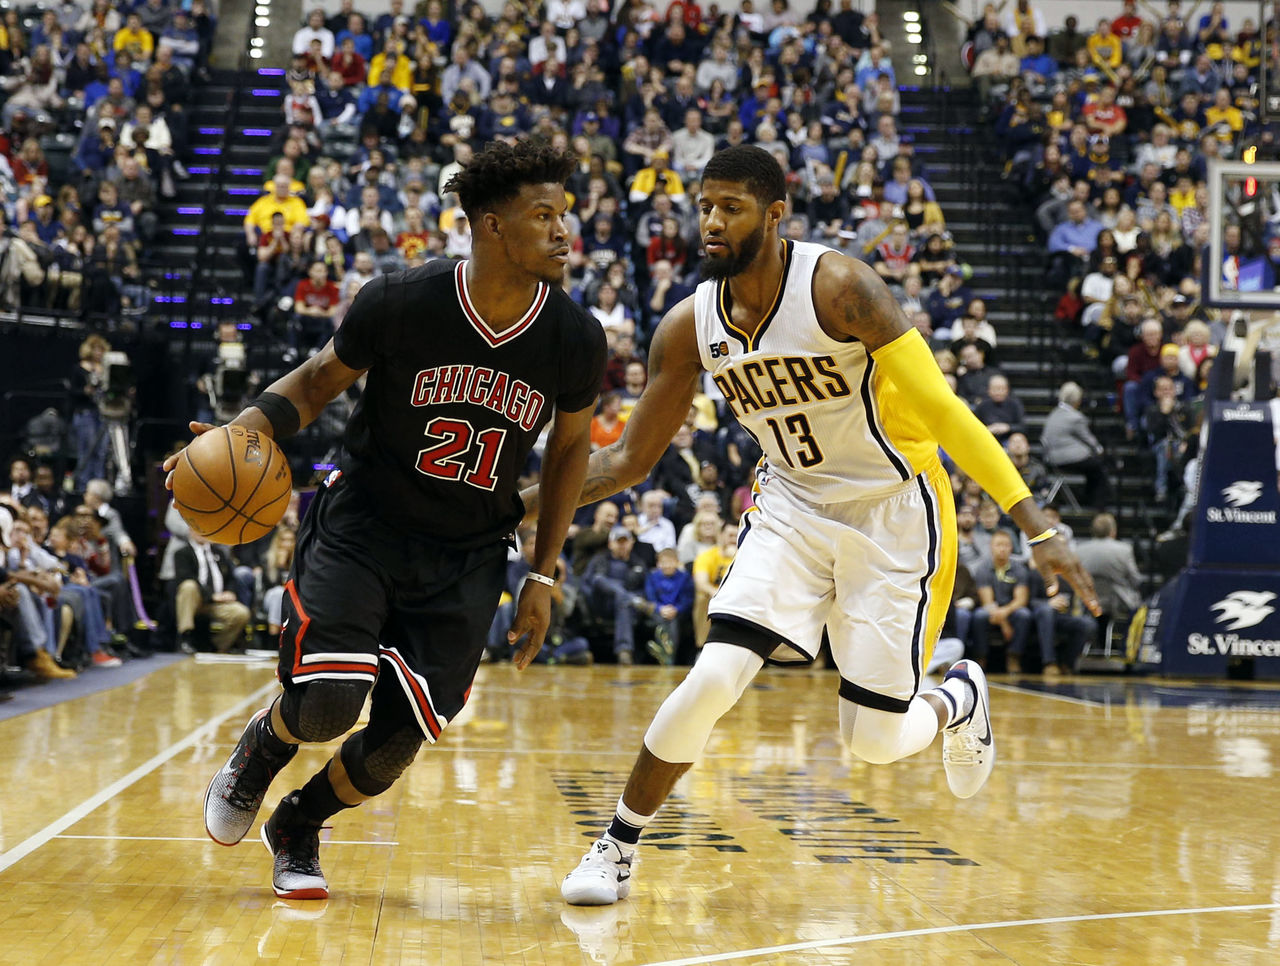 Cropped_2016-12-30t235933z_453630774_nocid_rtrmadp_3_nba-chicago-bulls-at-indiana-pacers